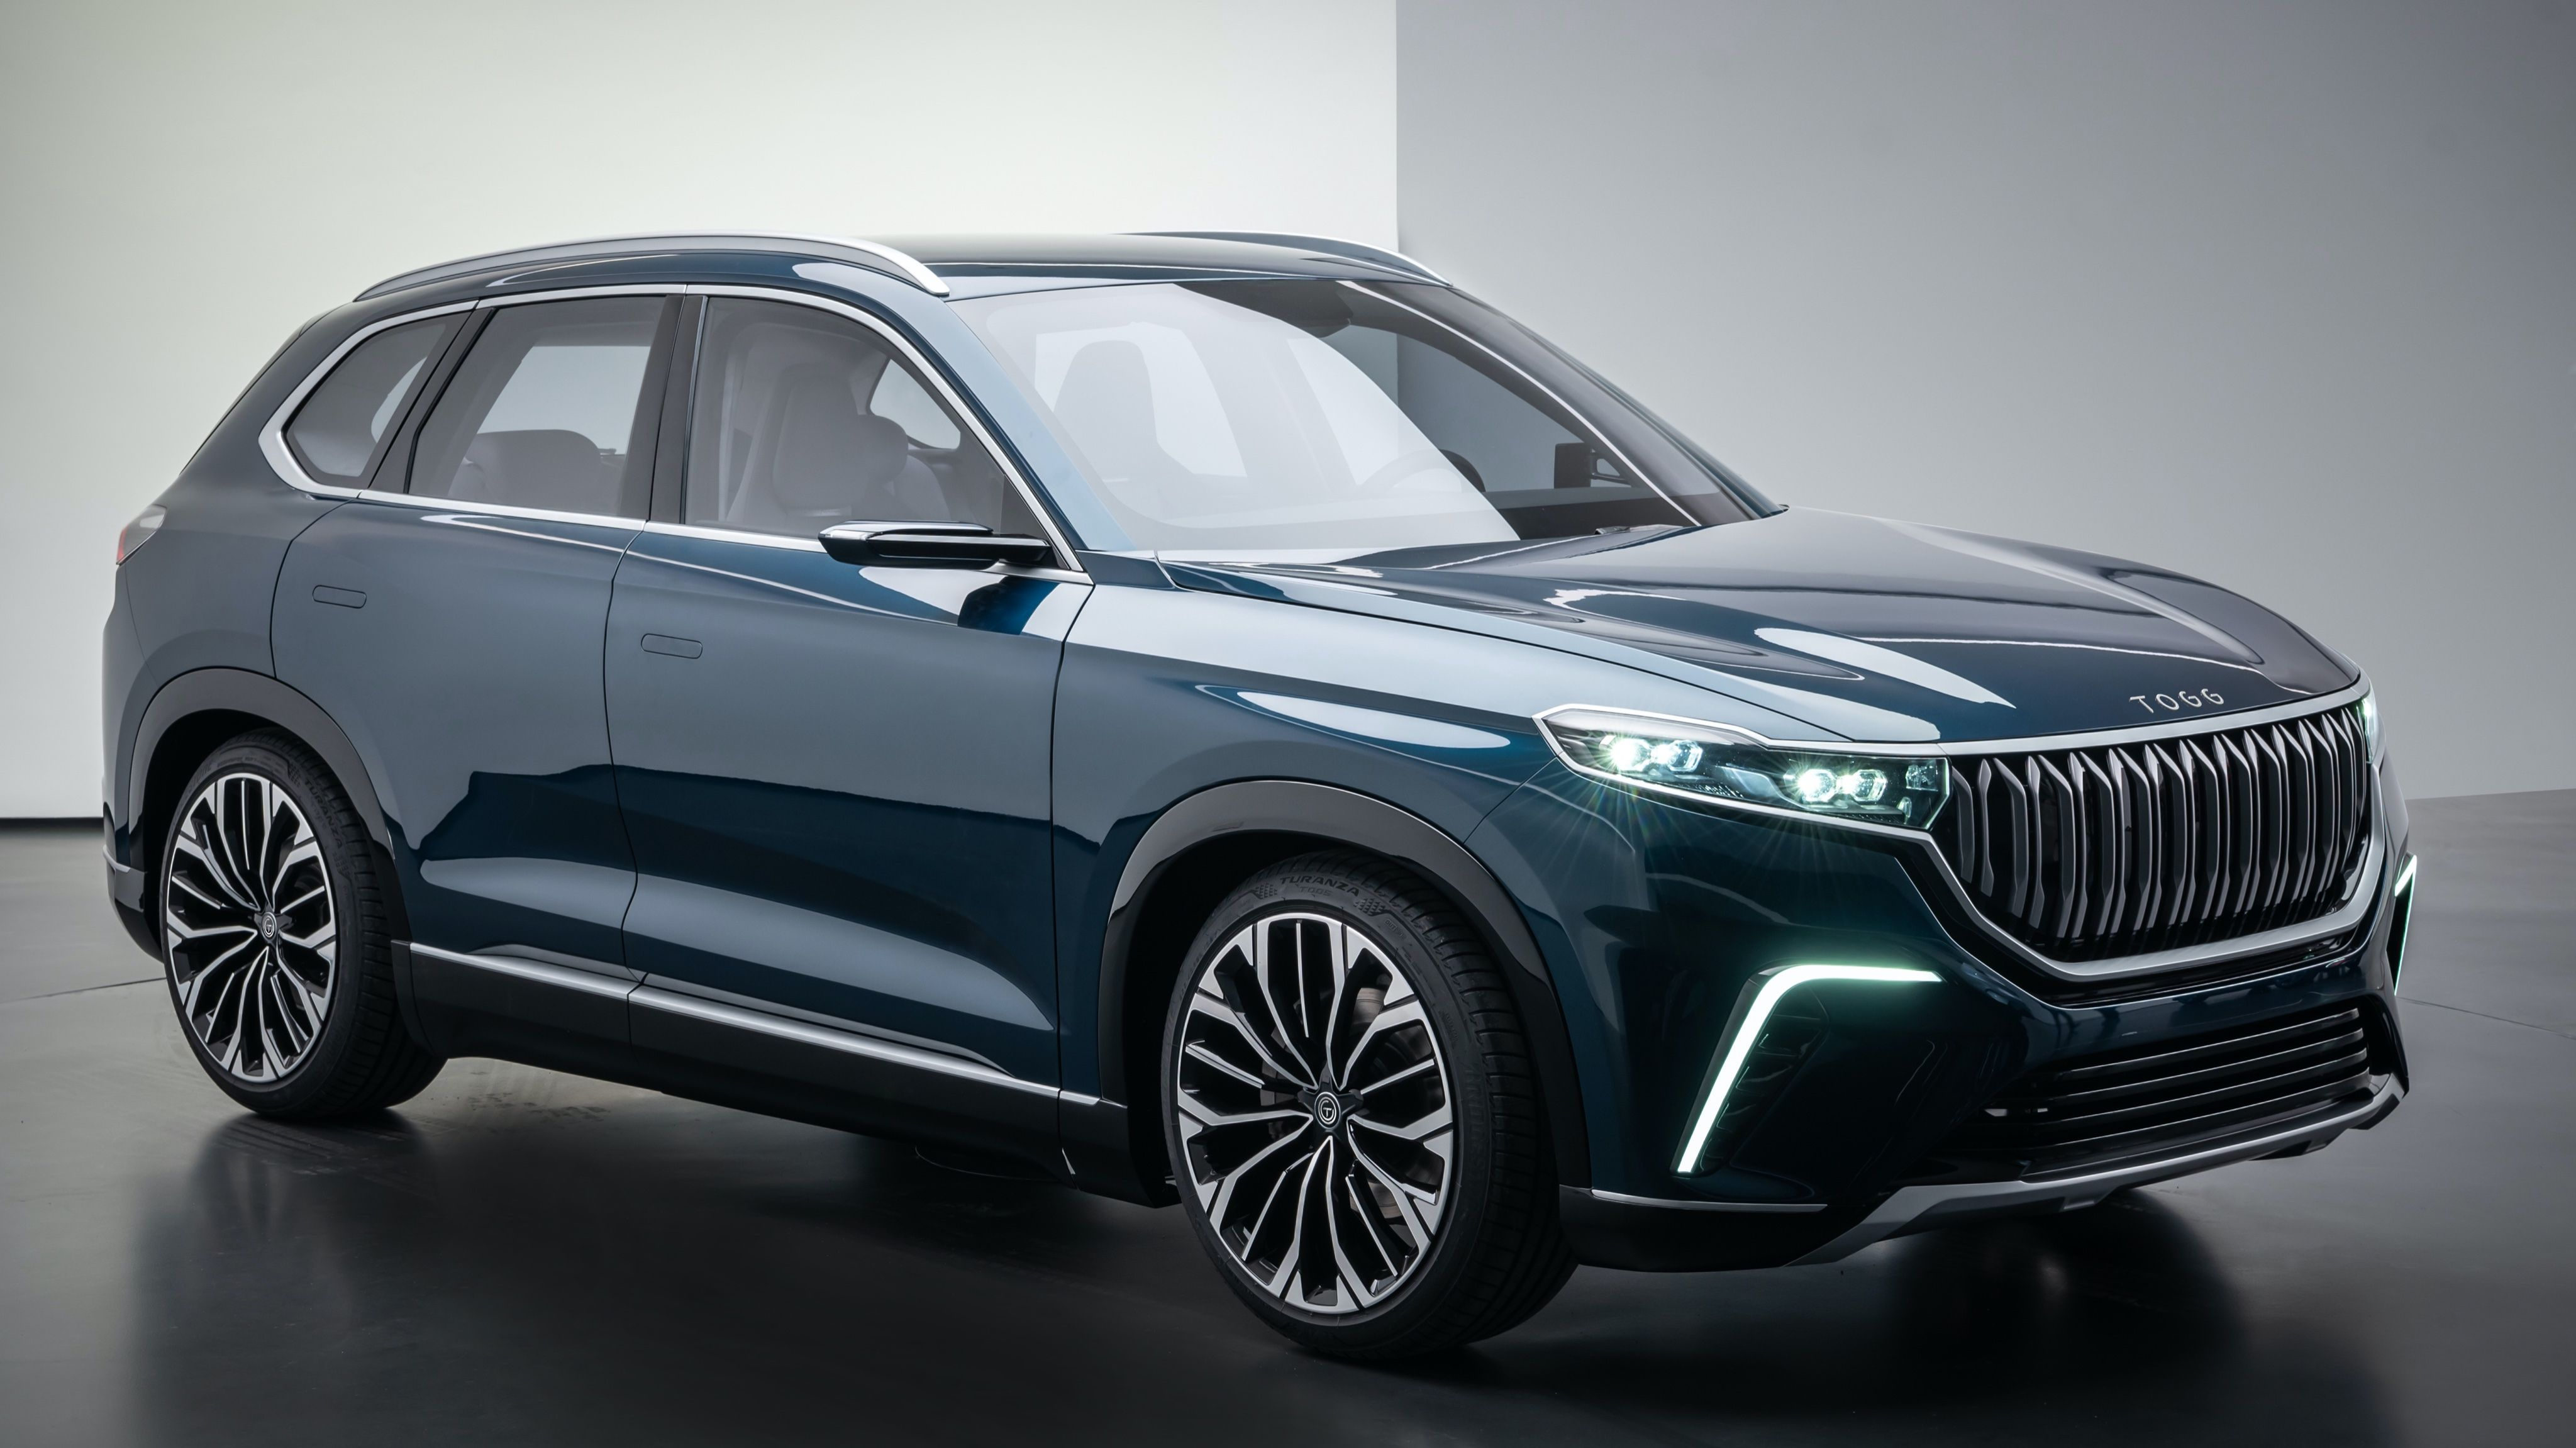 First Turkish Car Company Plans To Launch An Electric Suv In 2022